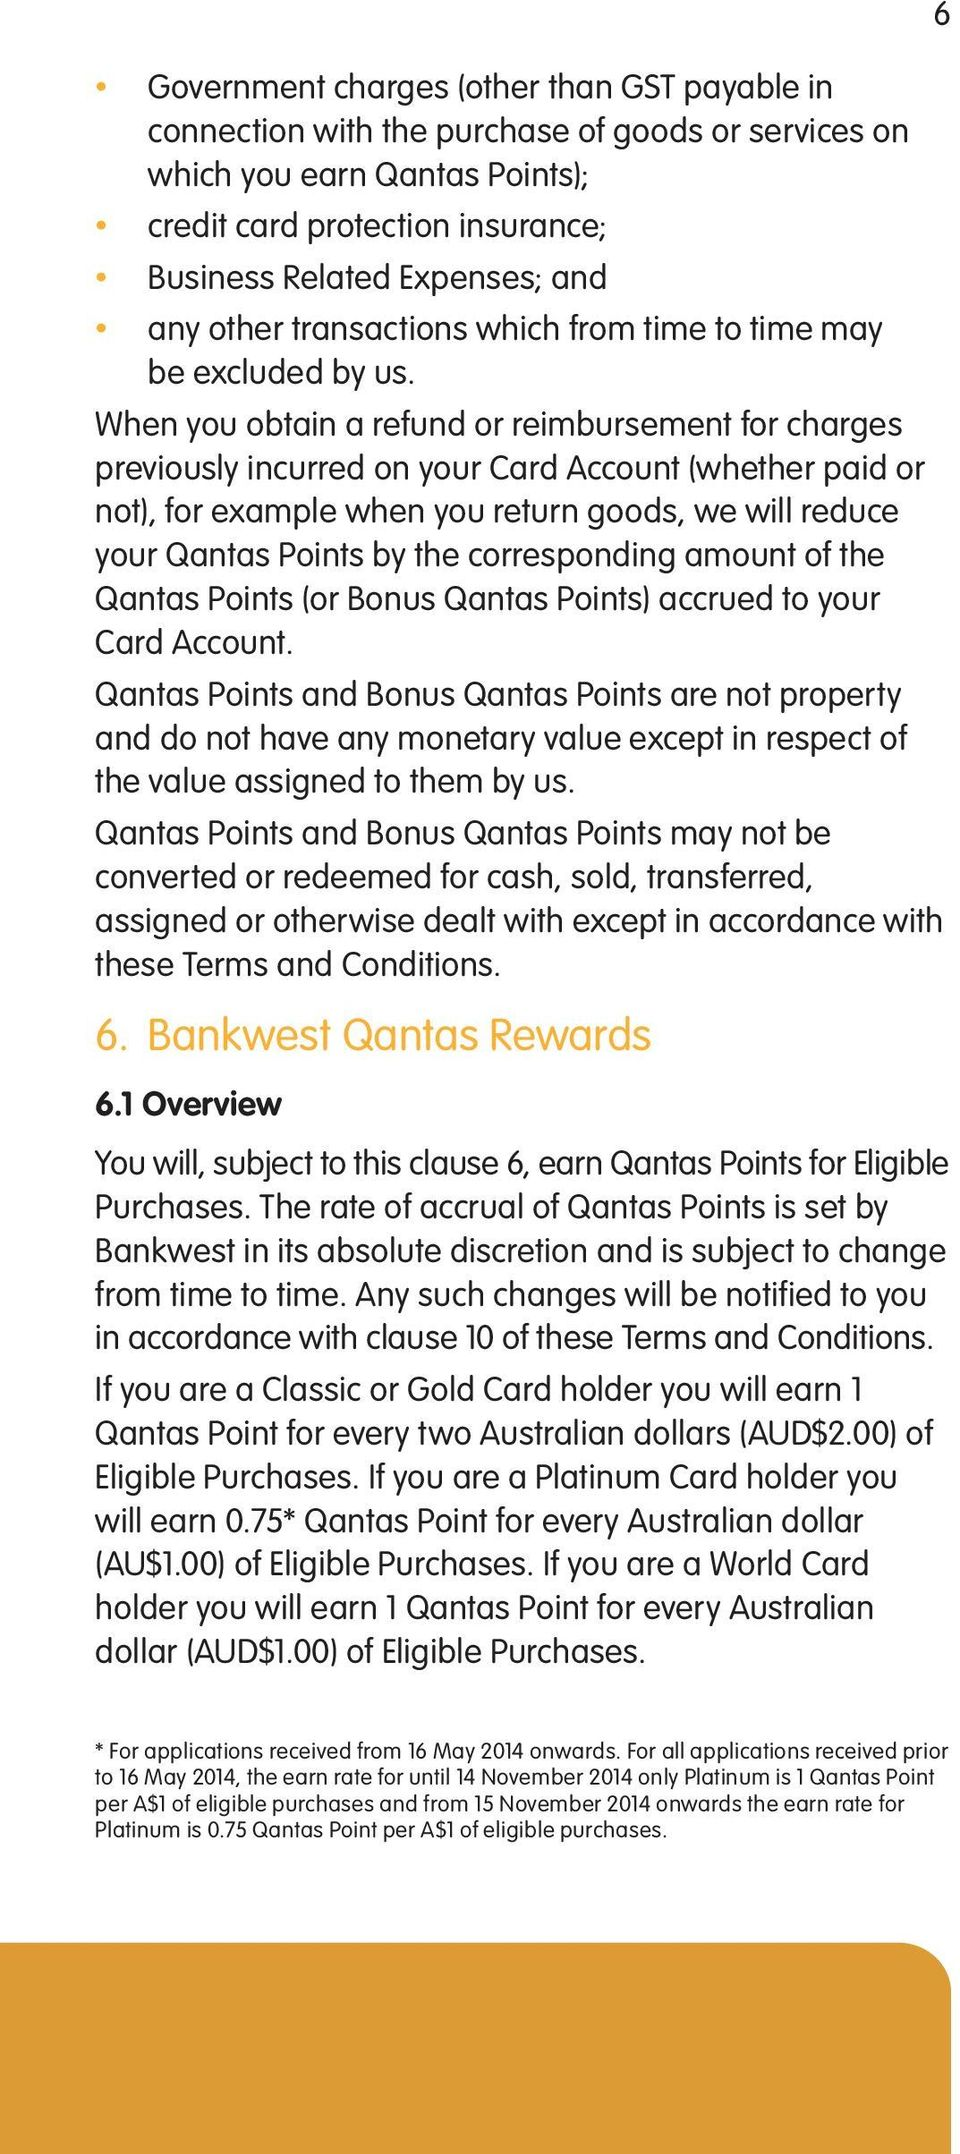 When you obtain a refund or reimbursement for charges previously incurred on your Card Account (whether paid or not), for example when you return goods, we will reduce your Qantas Points by the